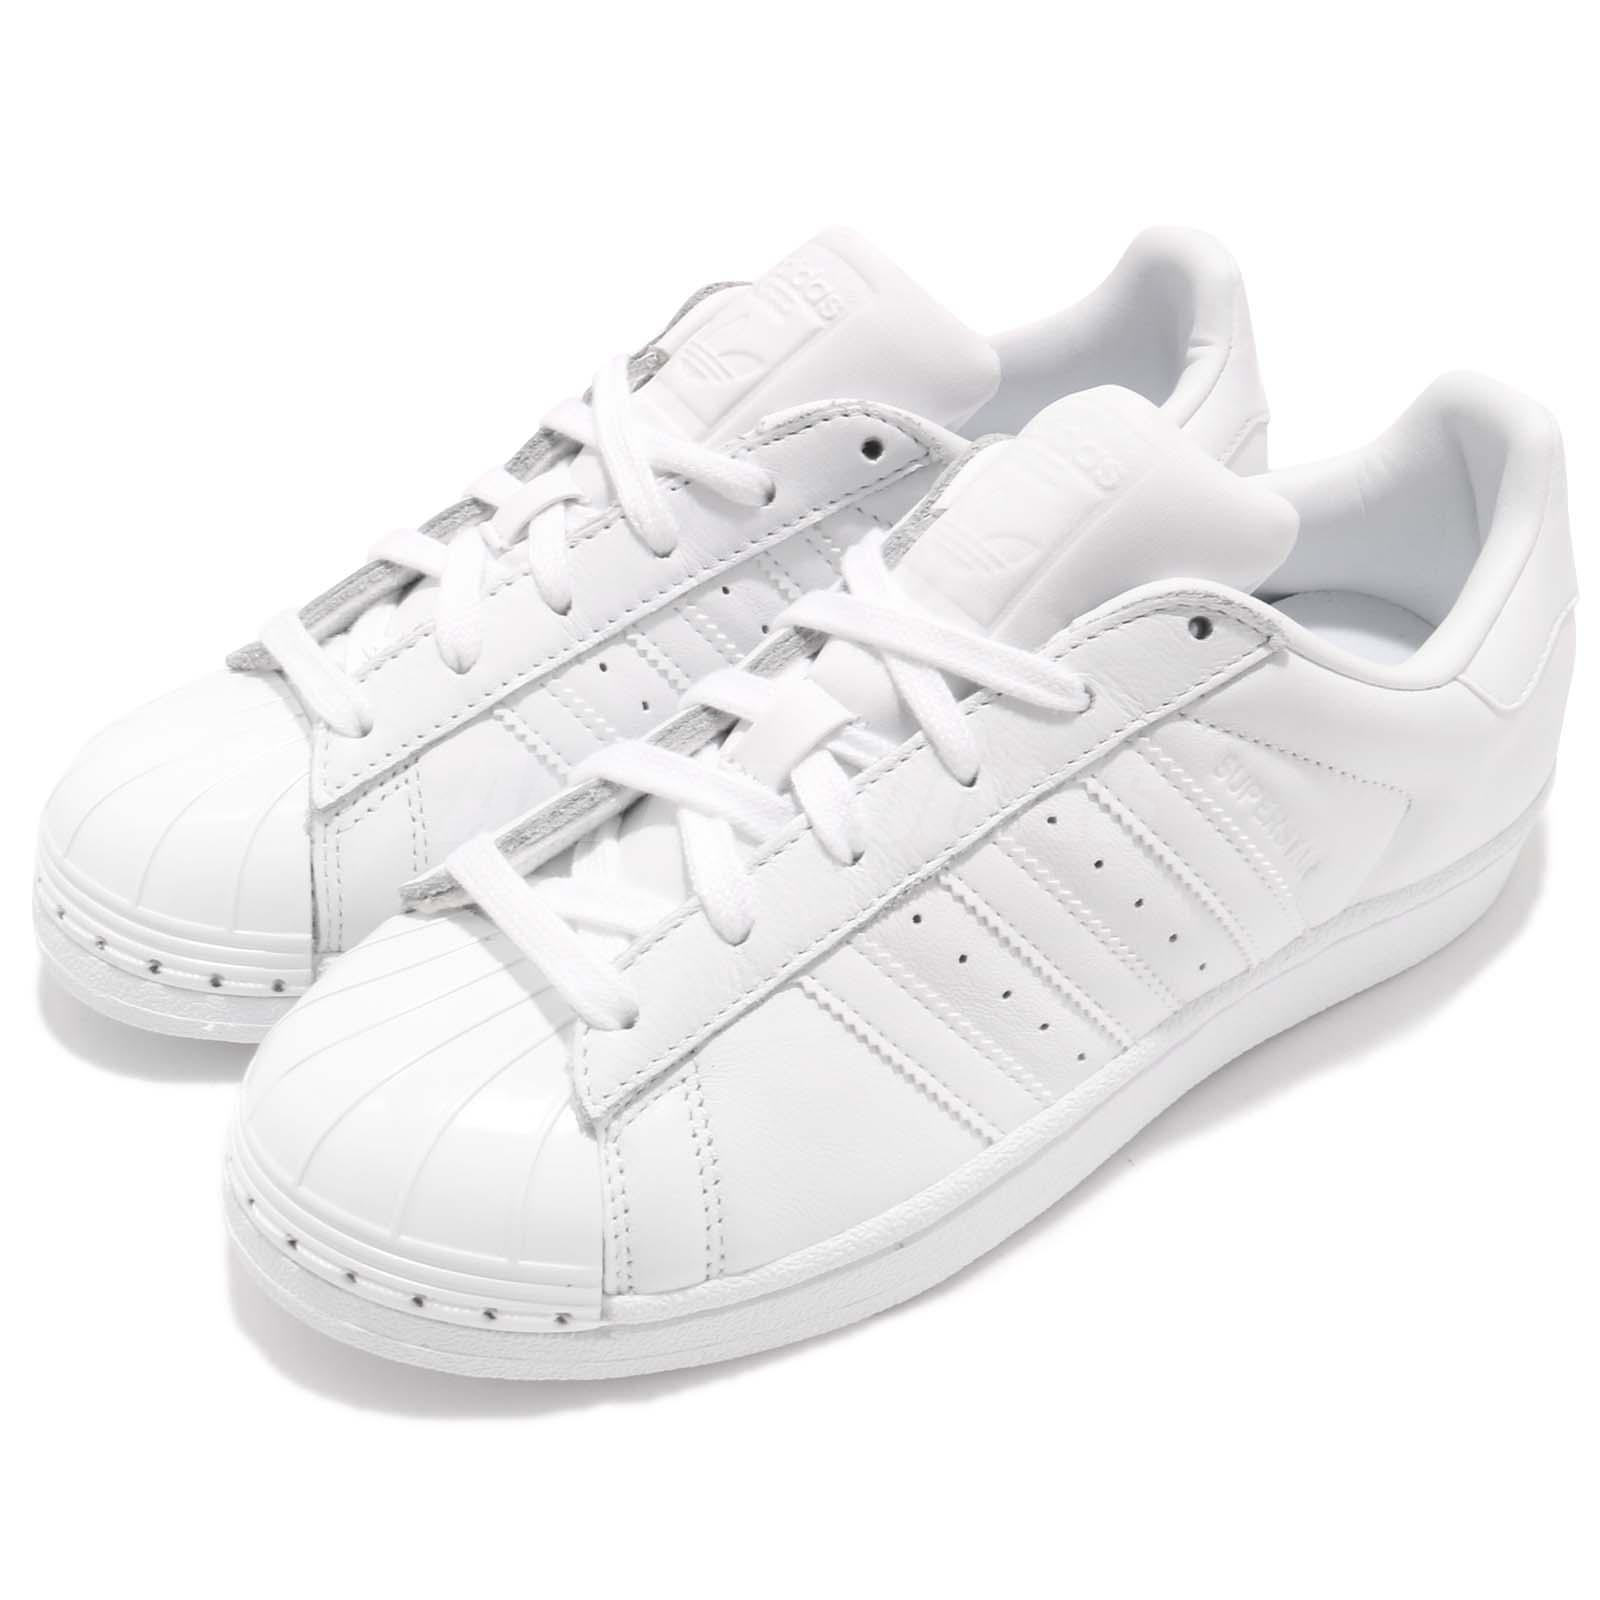 size 40 1999b 8c852 Details about adidas Originals Superstar Metal Toe White Women Casual Classic  Shoes BY9751